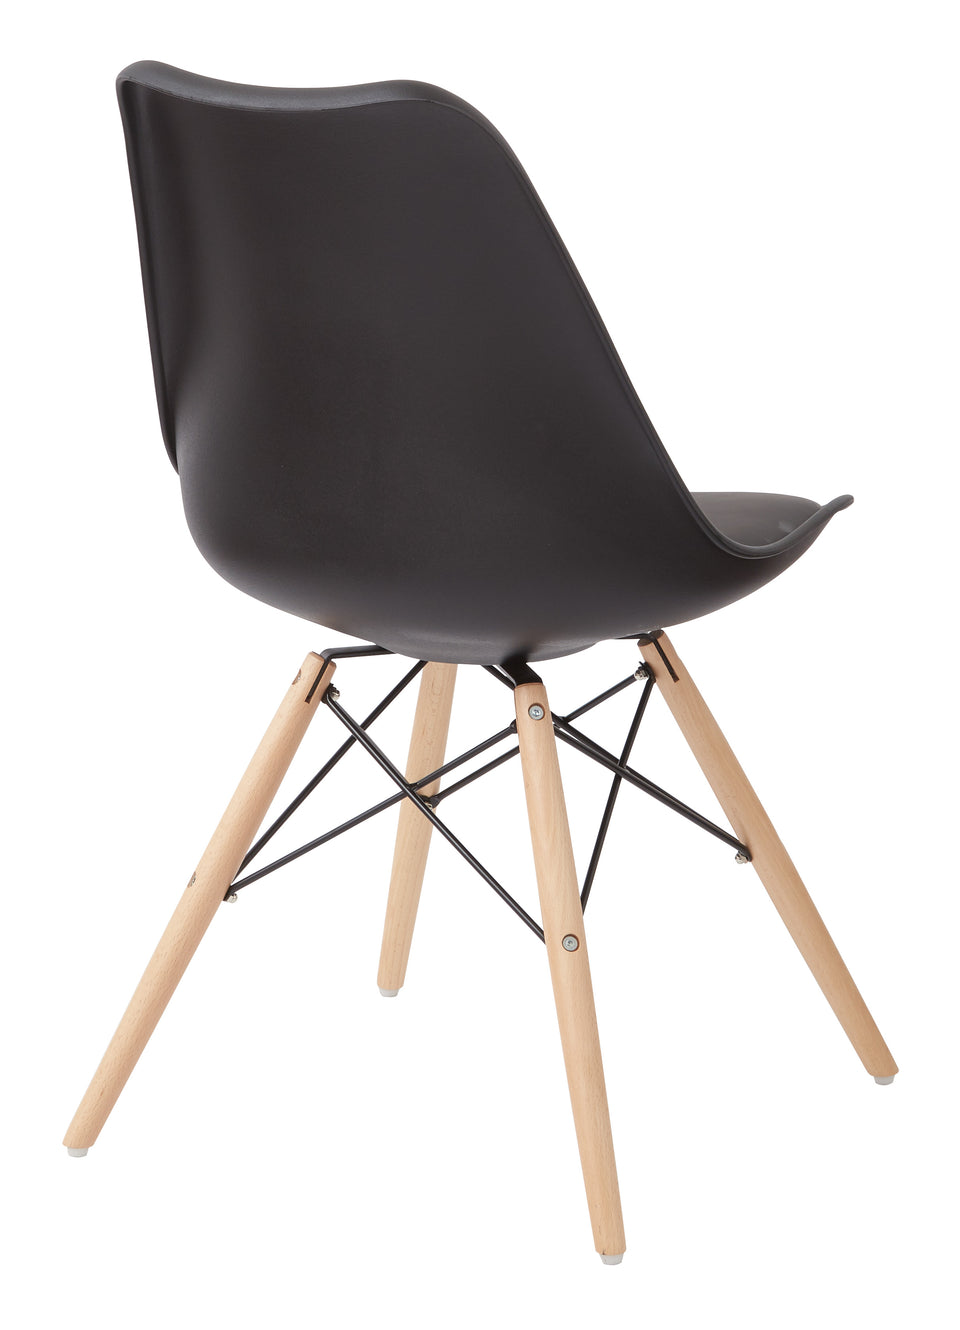 mid century modern aimes black bucket chair with natural post legs scandinavian design inspired from decurban.com back view